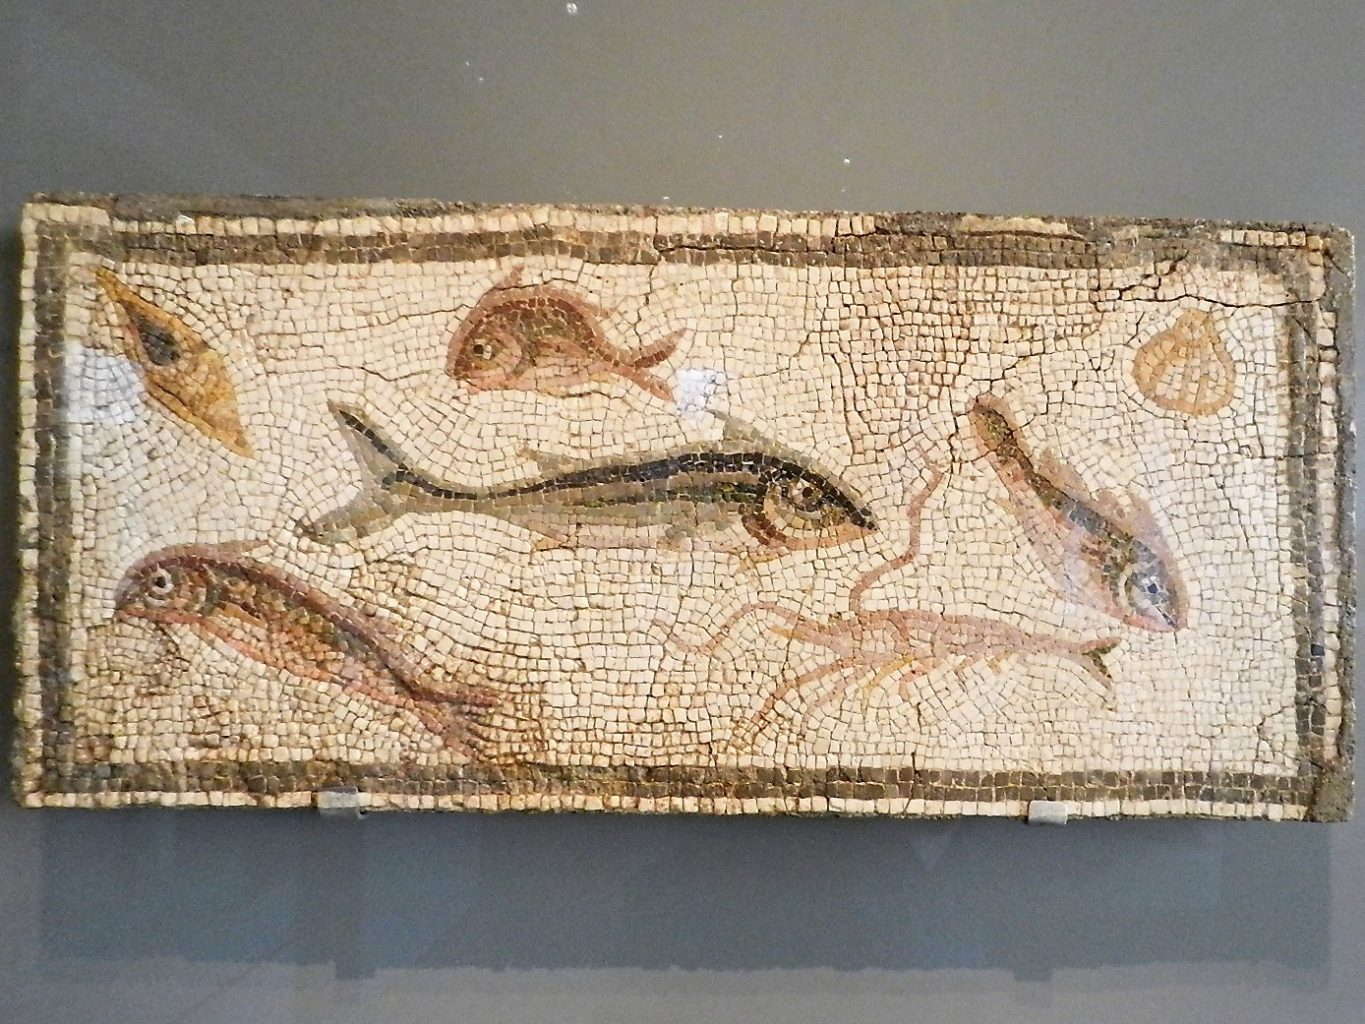 Art Institute of Chicago - 3rd century fish mosaic